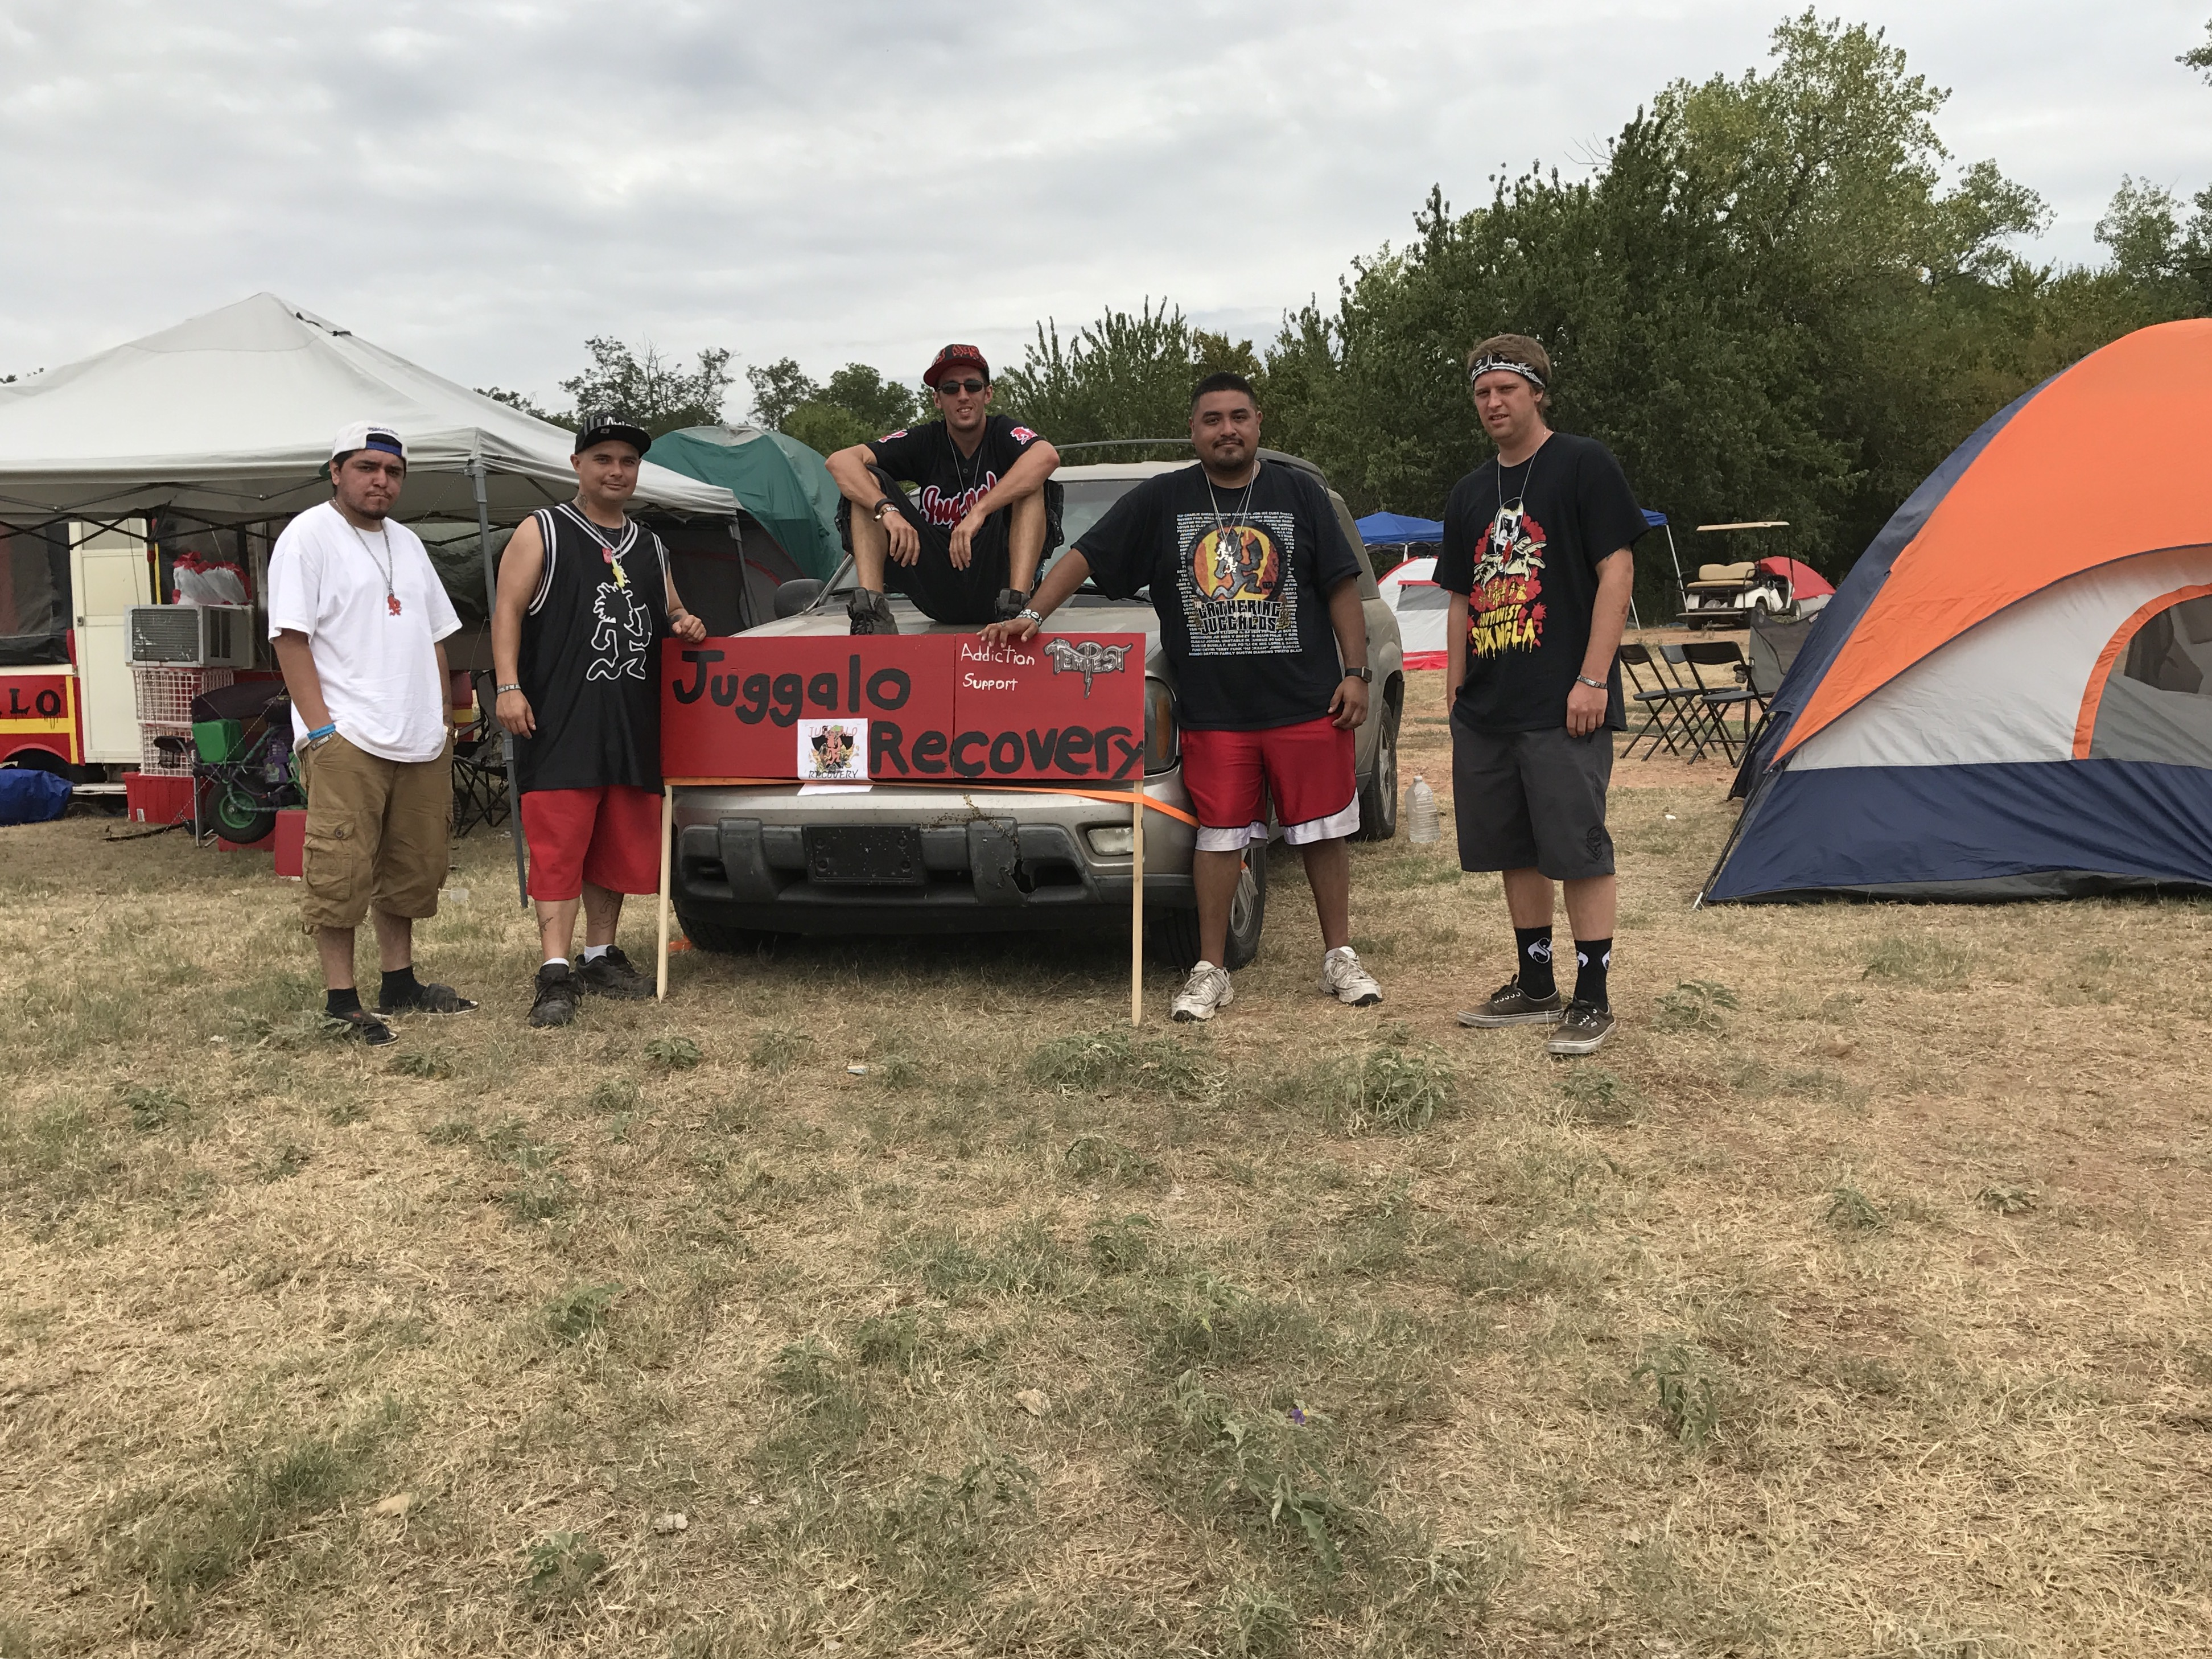 Juggalos in Recovery, Addiction, what is a juggalo, happy living, how to start loving yourself, what is personal growth, what is emotional sobriety, how to help an addict, what is addiction, how to deal with trauma, addiction help, juggalo, empower yourself